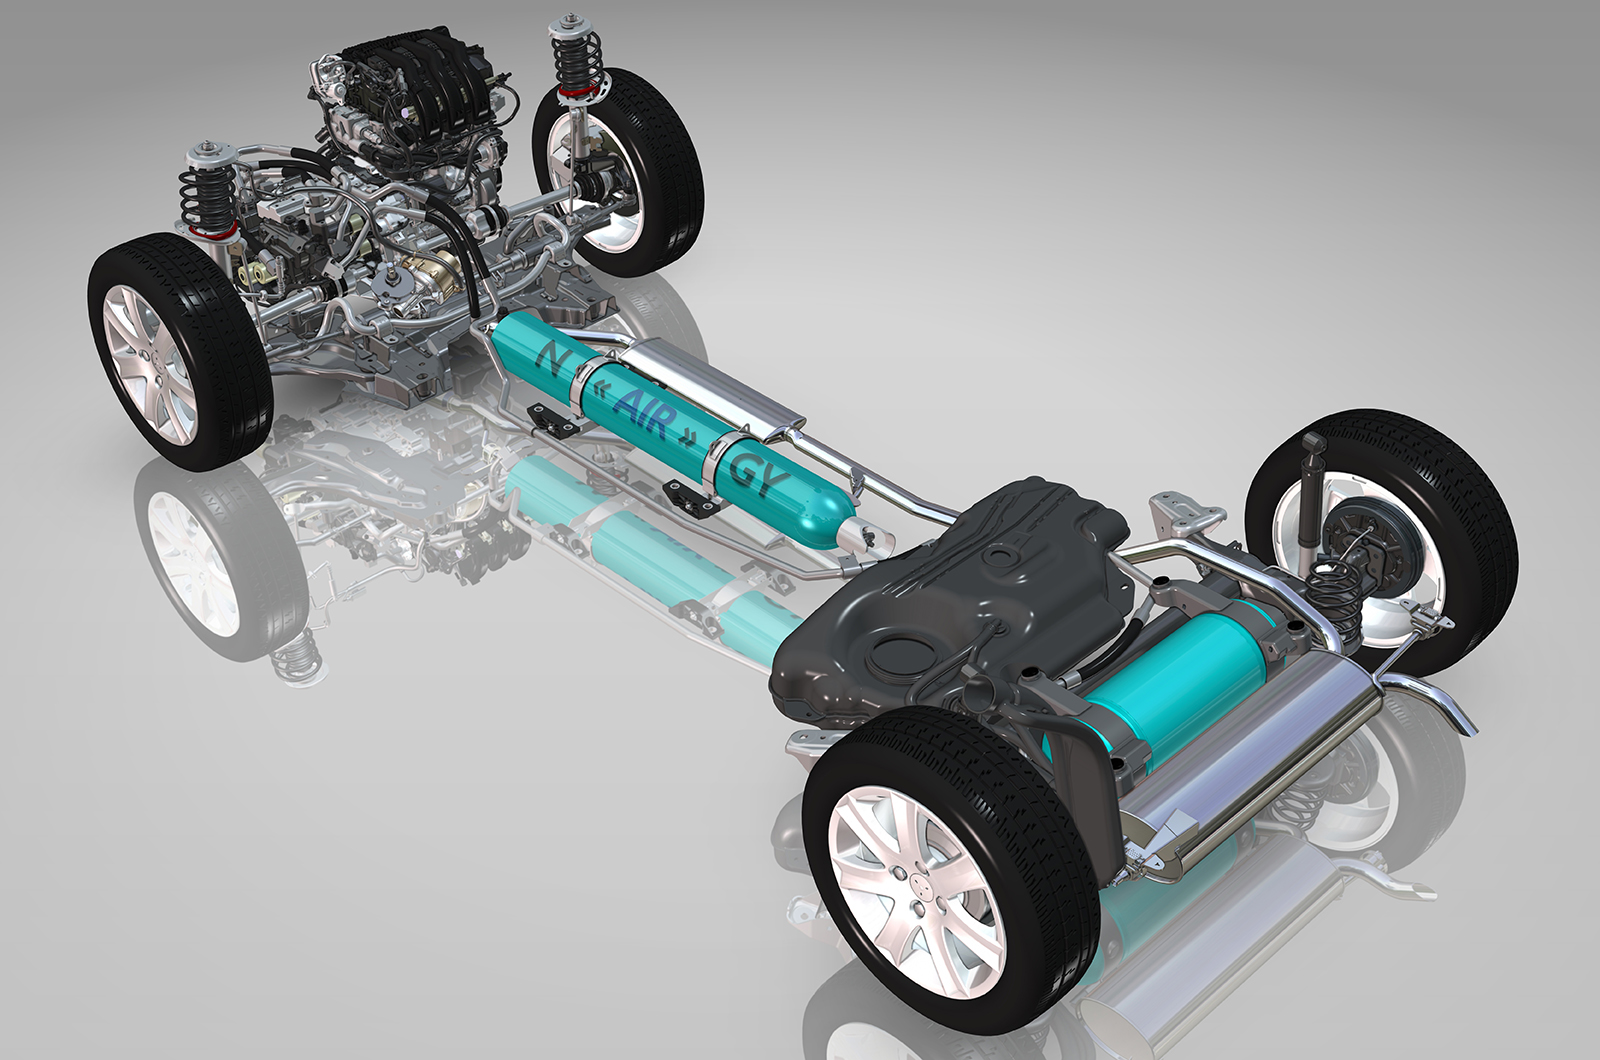 hybrid vehcile A hybrid vehicle has two powertrains, one gasoline and one electric, which work together for maximum efficiency in some situations, the engine can.